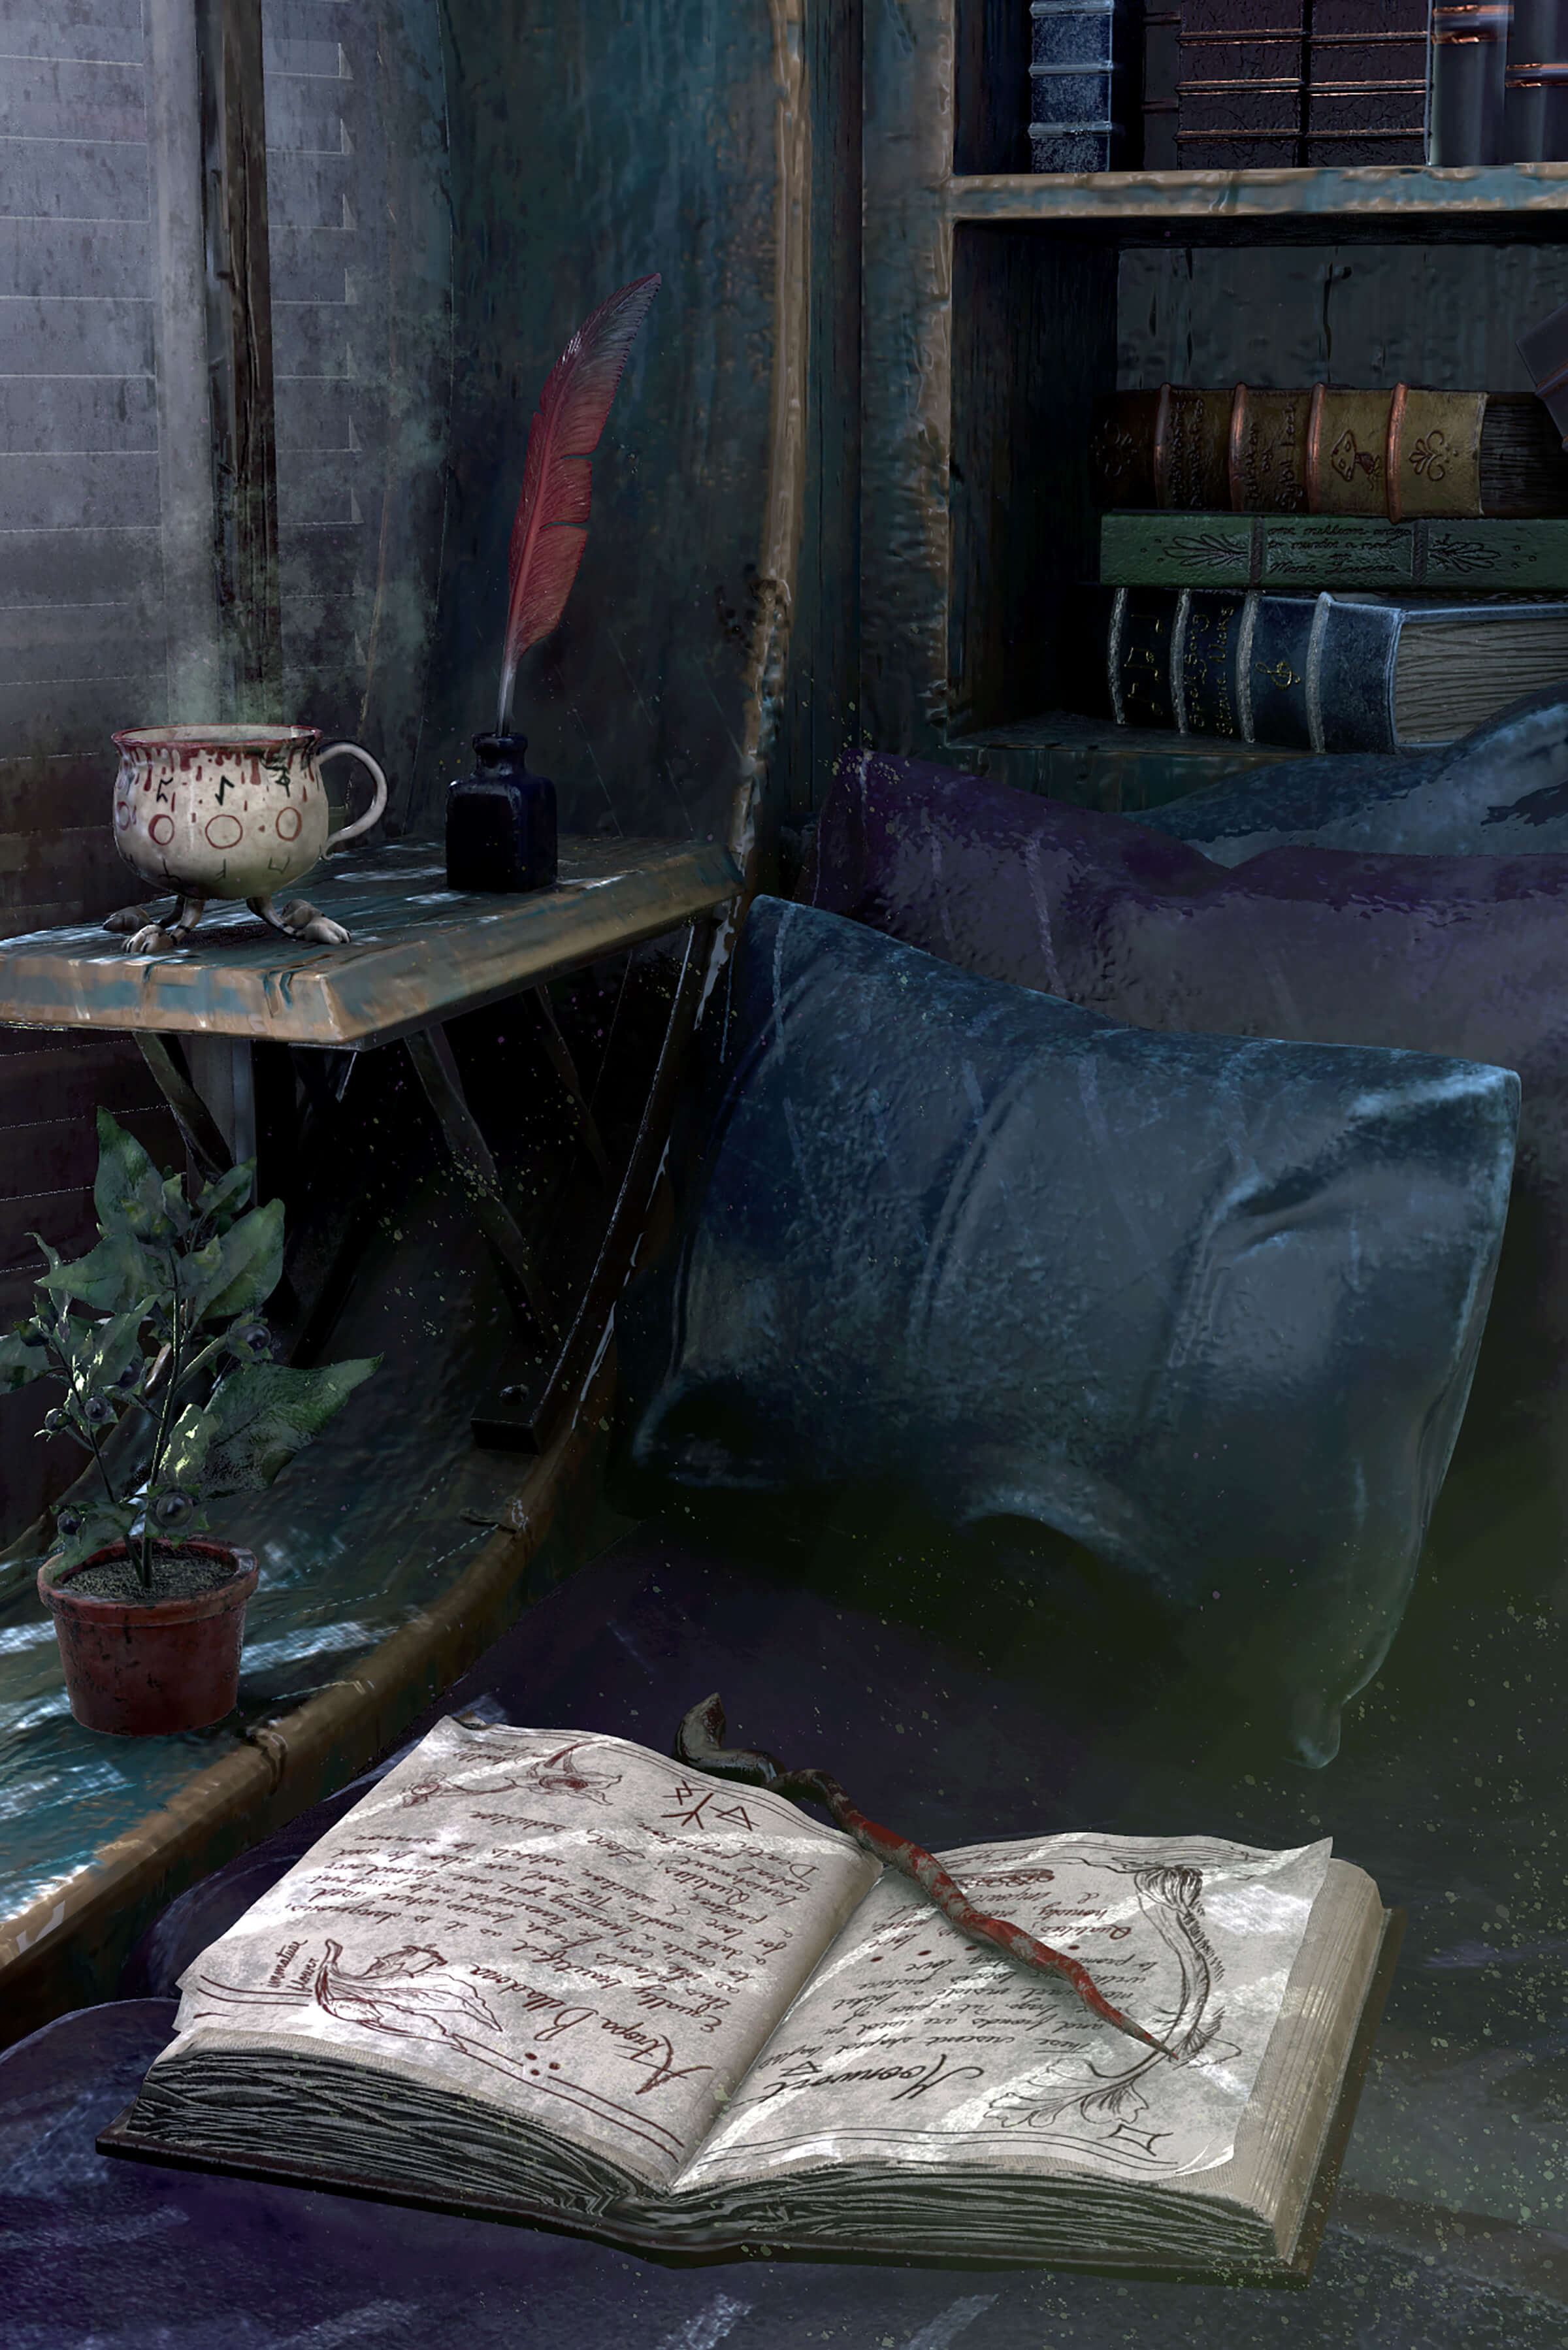 A spot for reading with pillows, a book, an ink well, and quill.